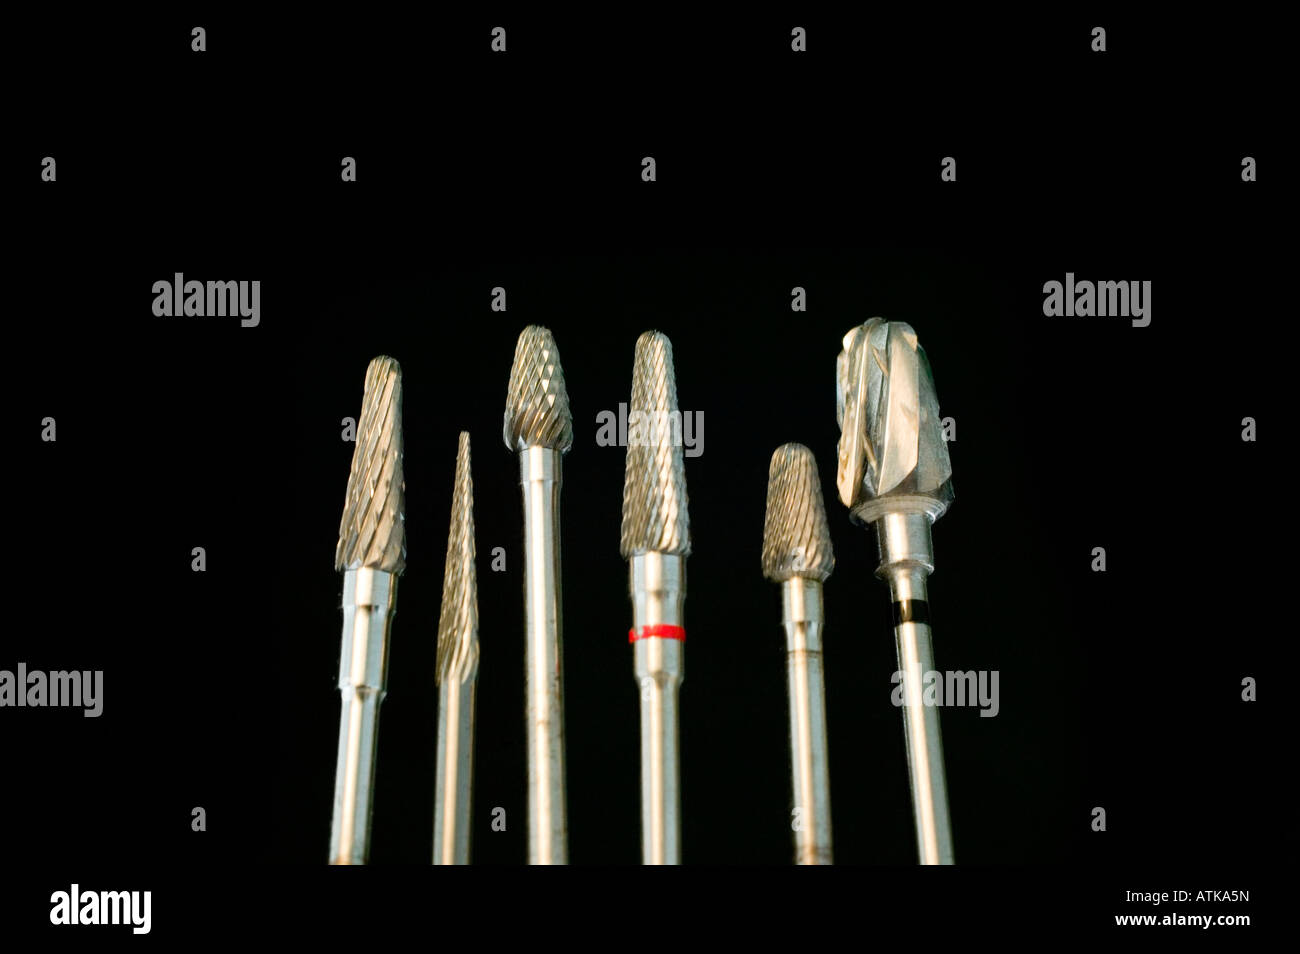 Bohrer vom Zahnarzt, Drill of the dentist, tool - Stock Image